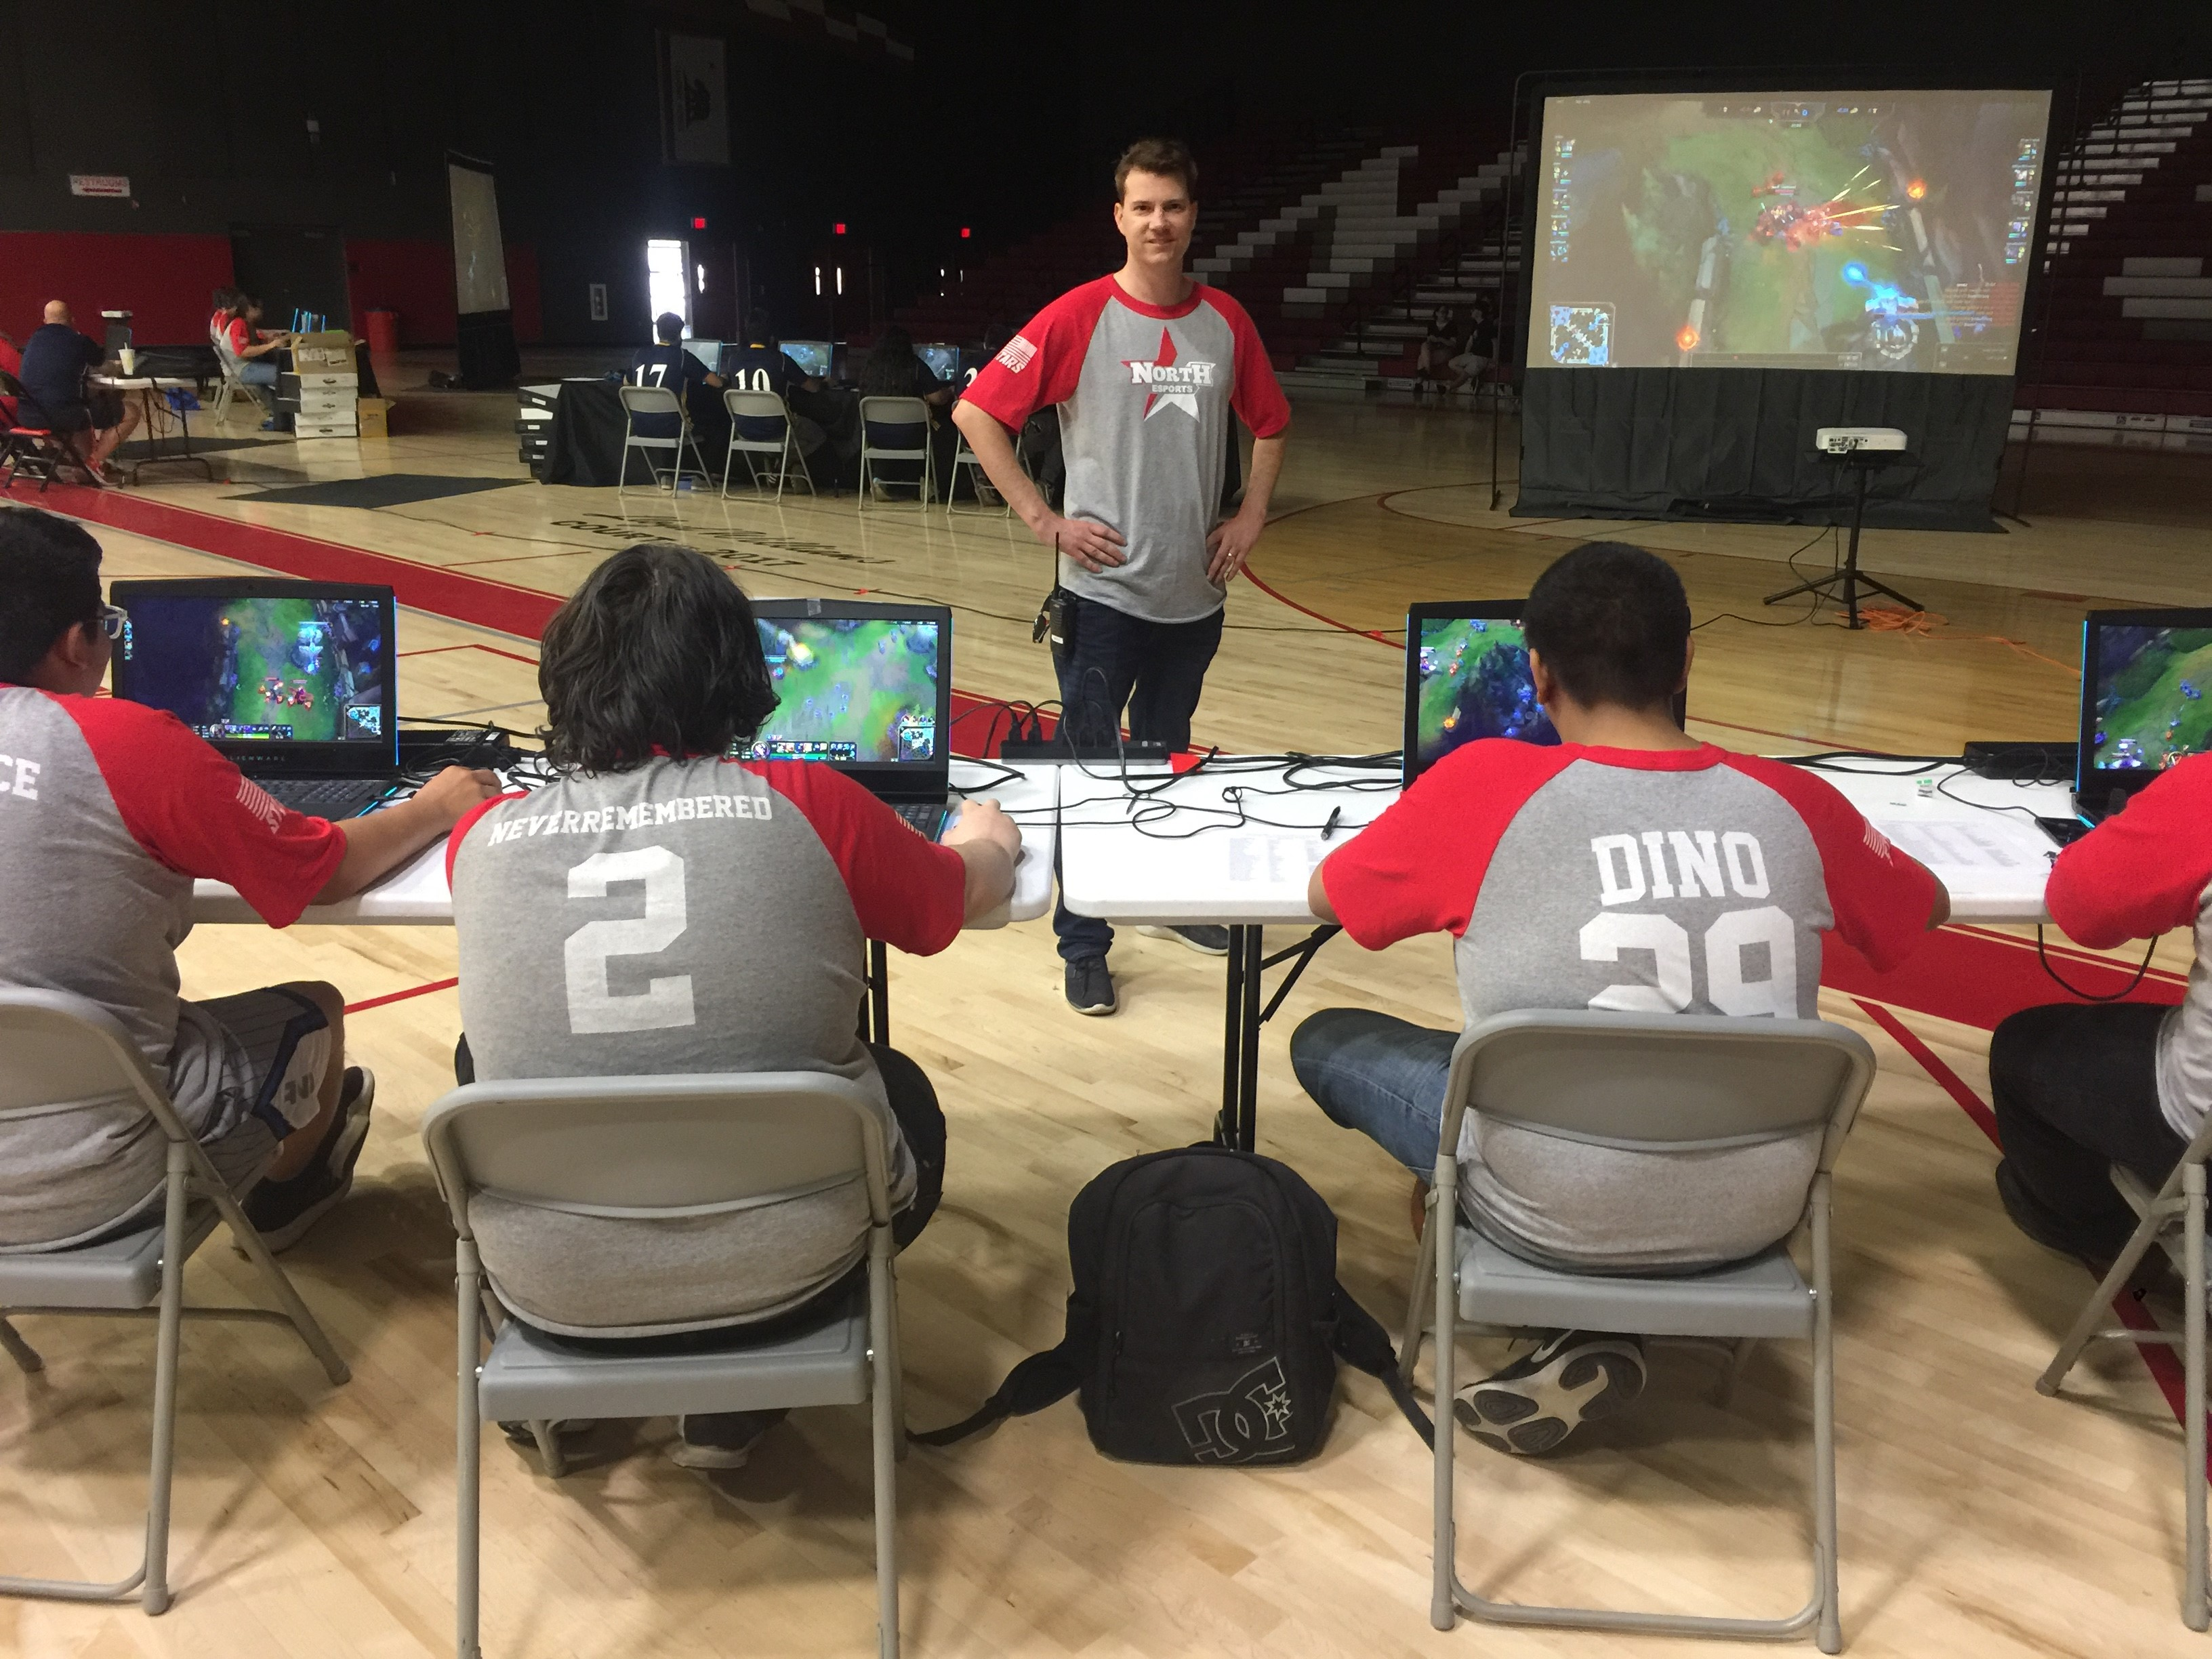 Students at North High School in Bakersfield, California, only play against other schools in the Kern High School District, which has 16 esports programs.